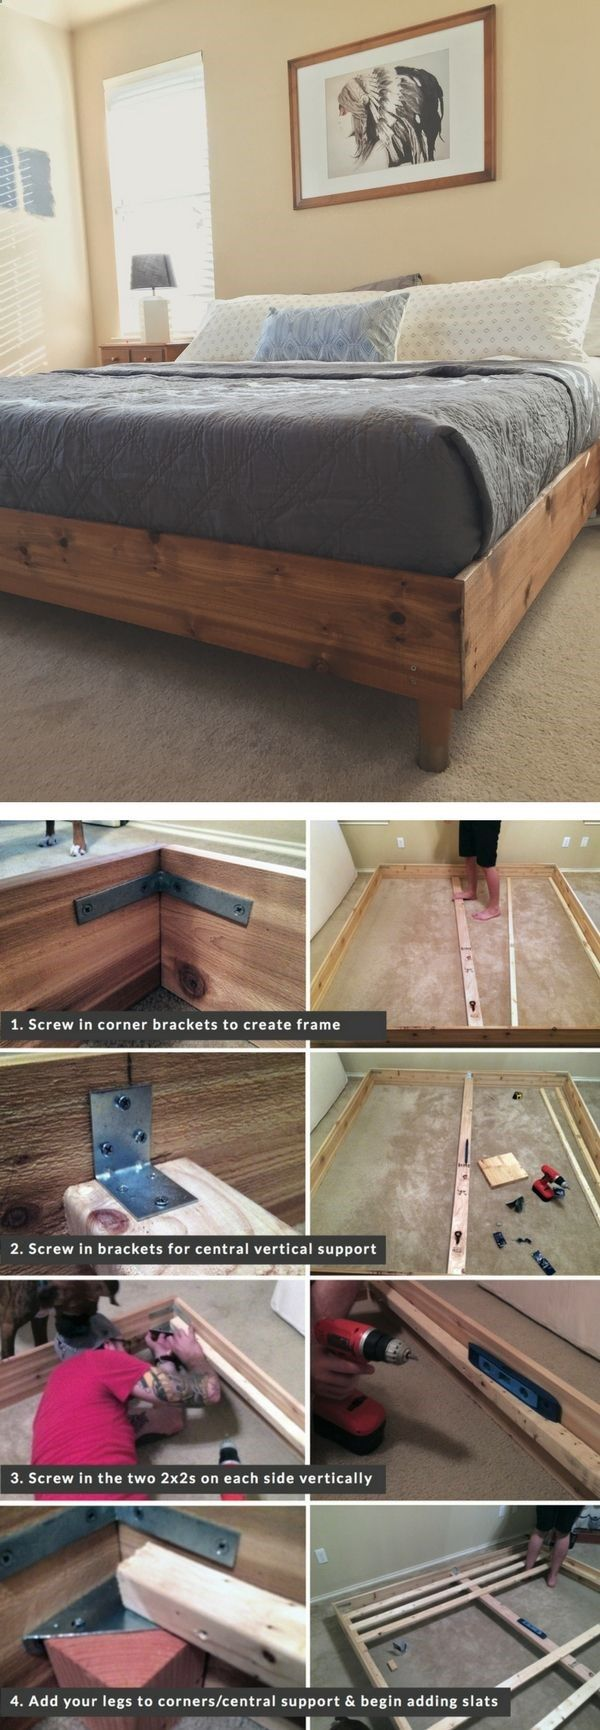 Best Shed Diy Check Out The Tutorial On How To Build A Diy 640 x 480